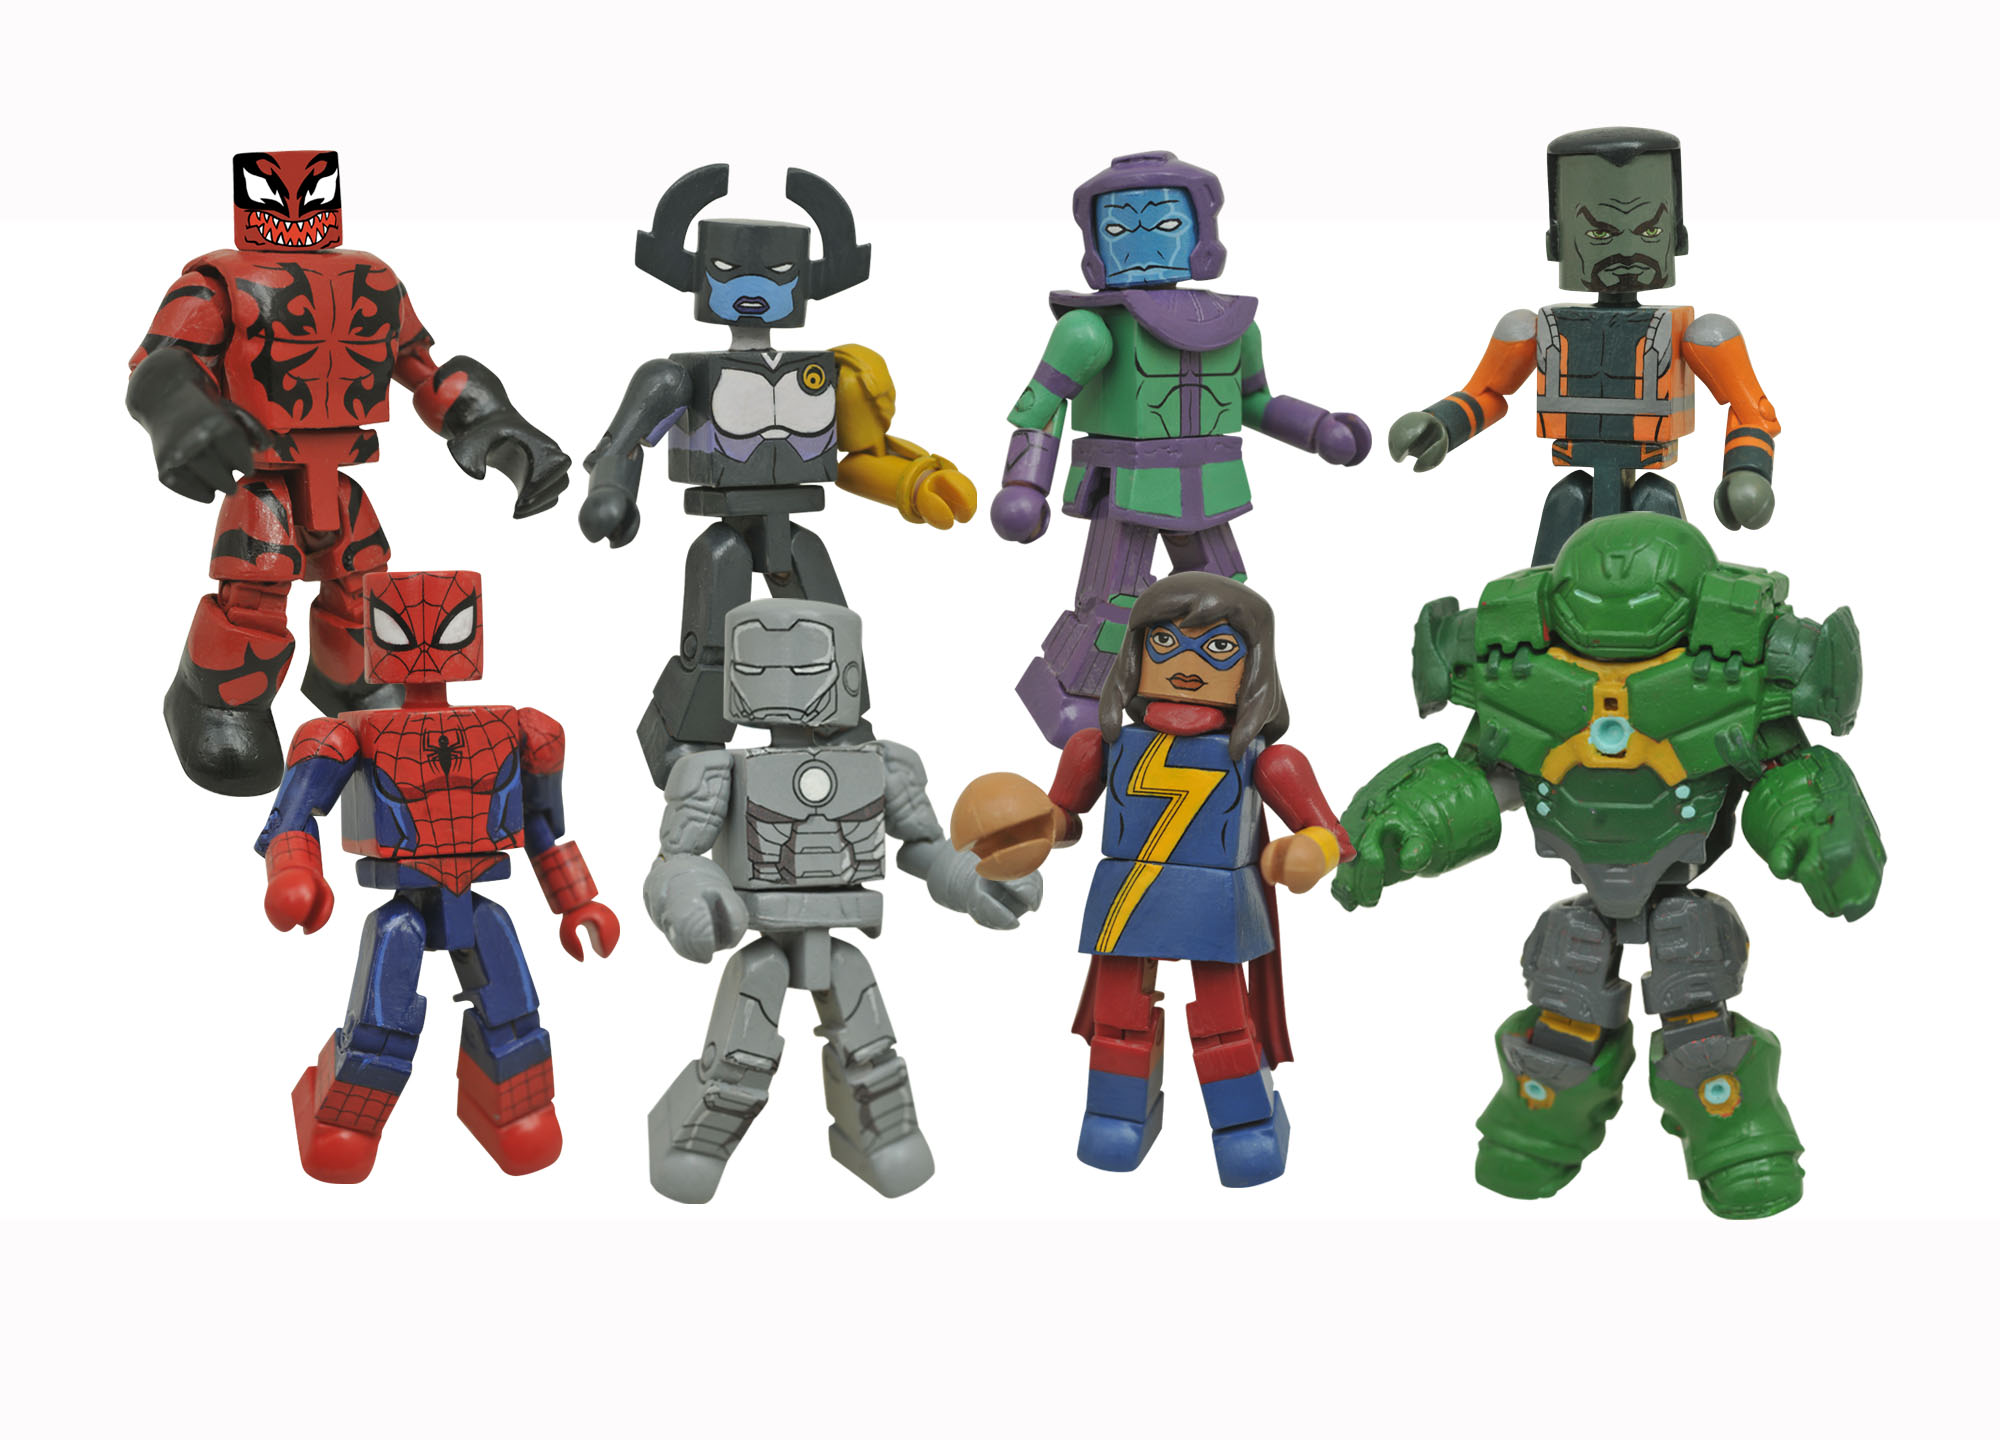 Walgreens Exclusive Marvel Animated Minimates Series 5 Revealed